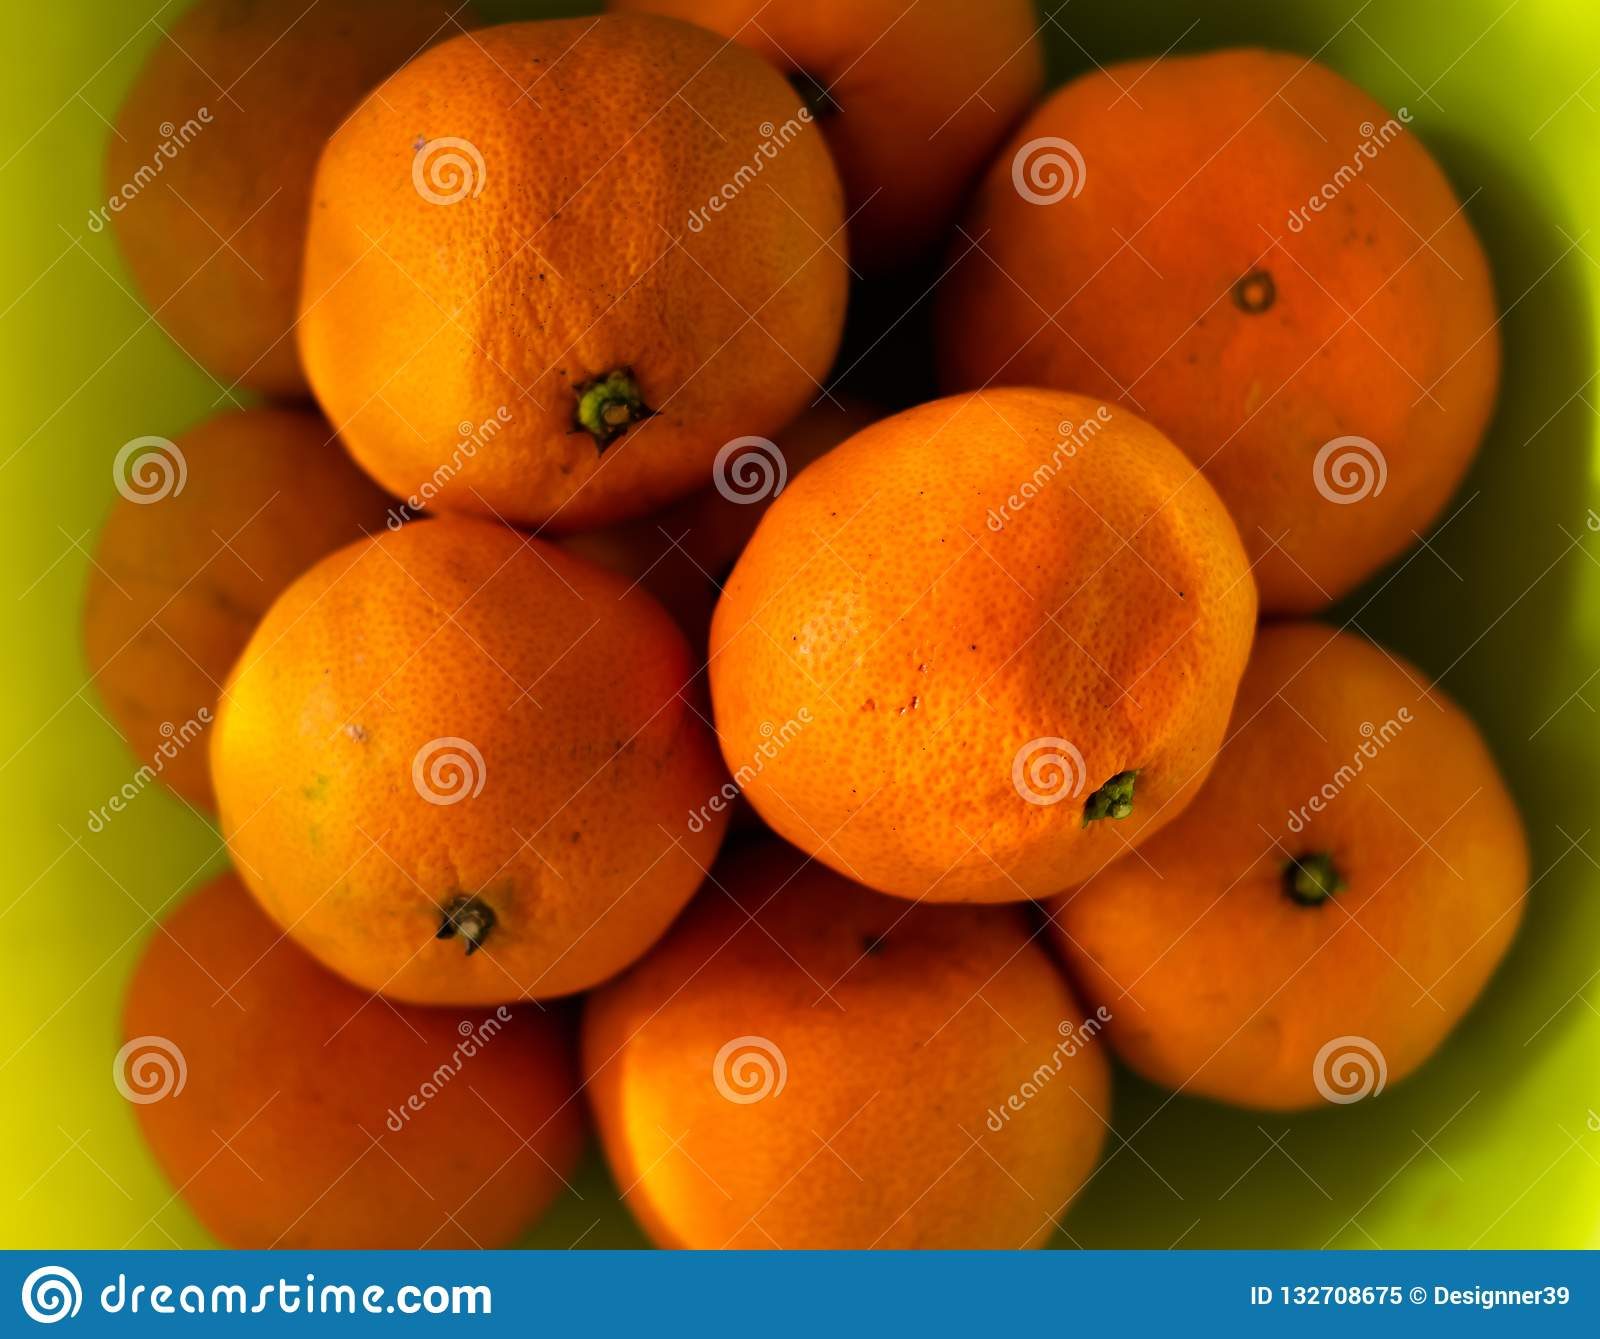 Top view , Healthy fruits, orange fruits green color background .